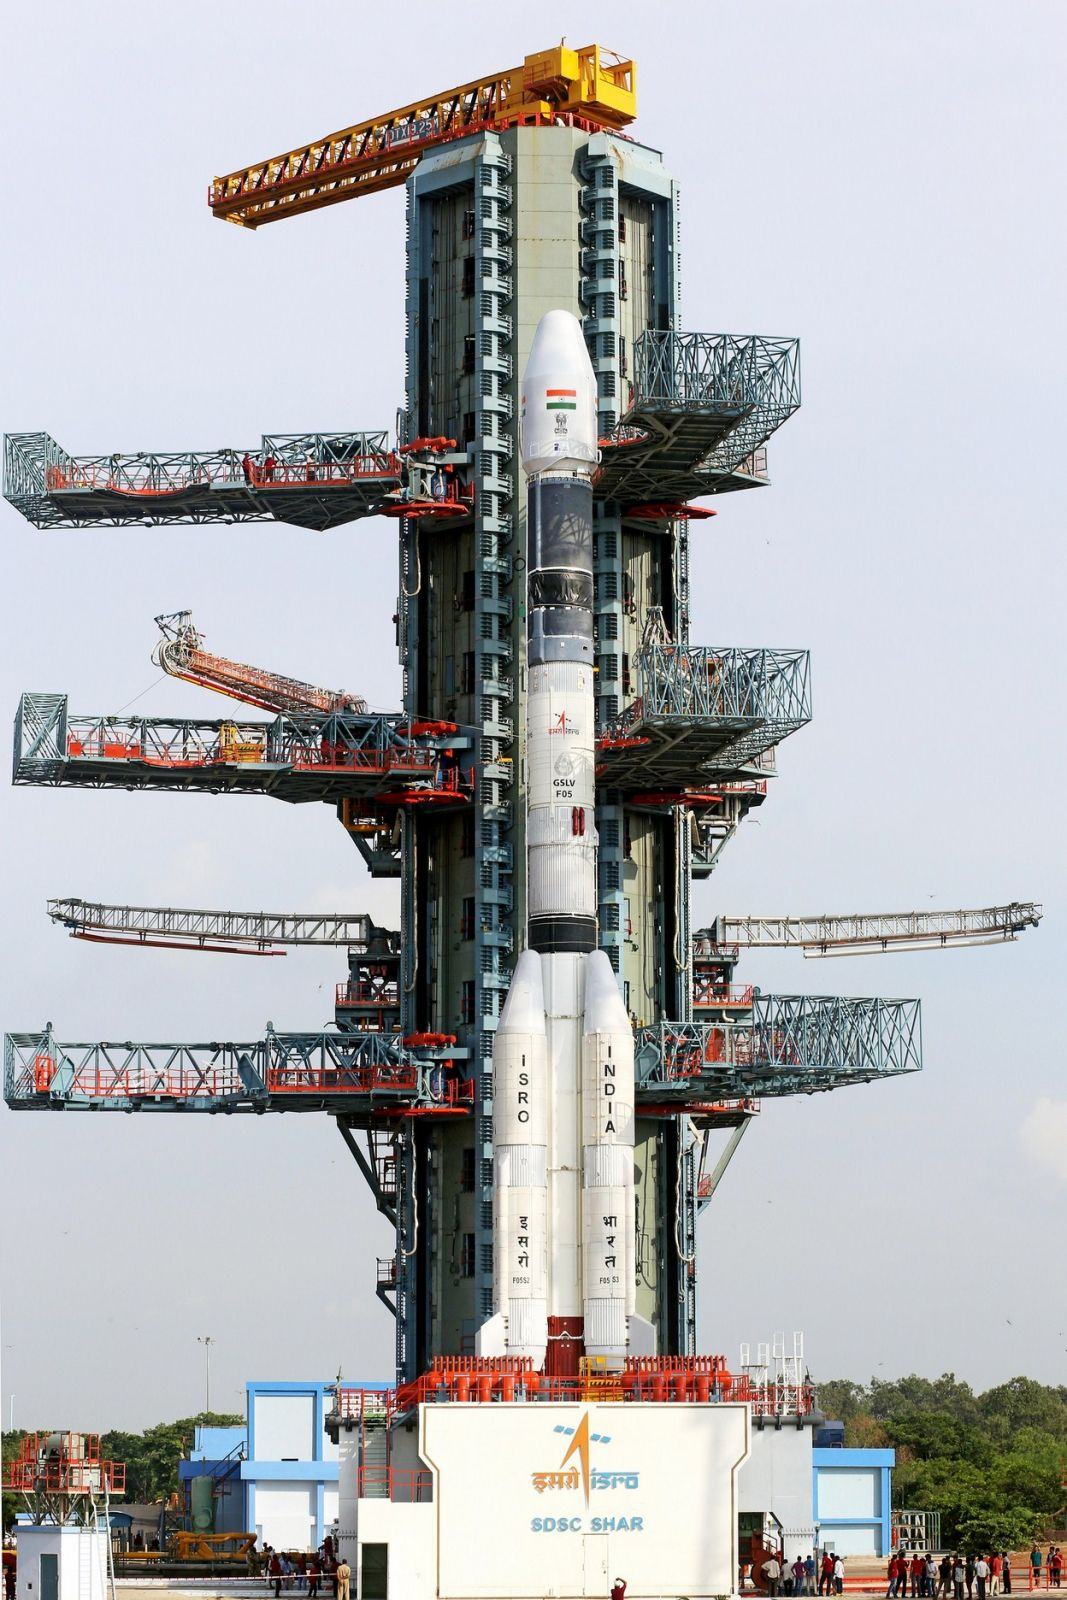 The fully integrated GSLV-F05 carrying INSAT-3DR, awaiting the launch.